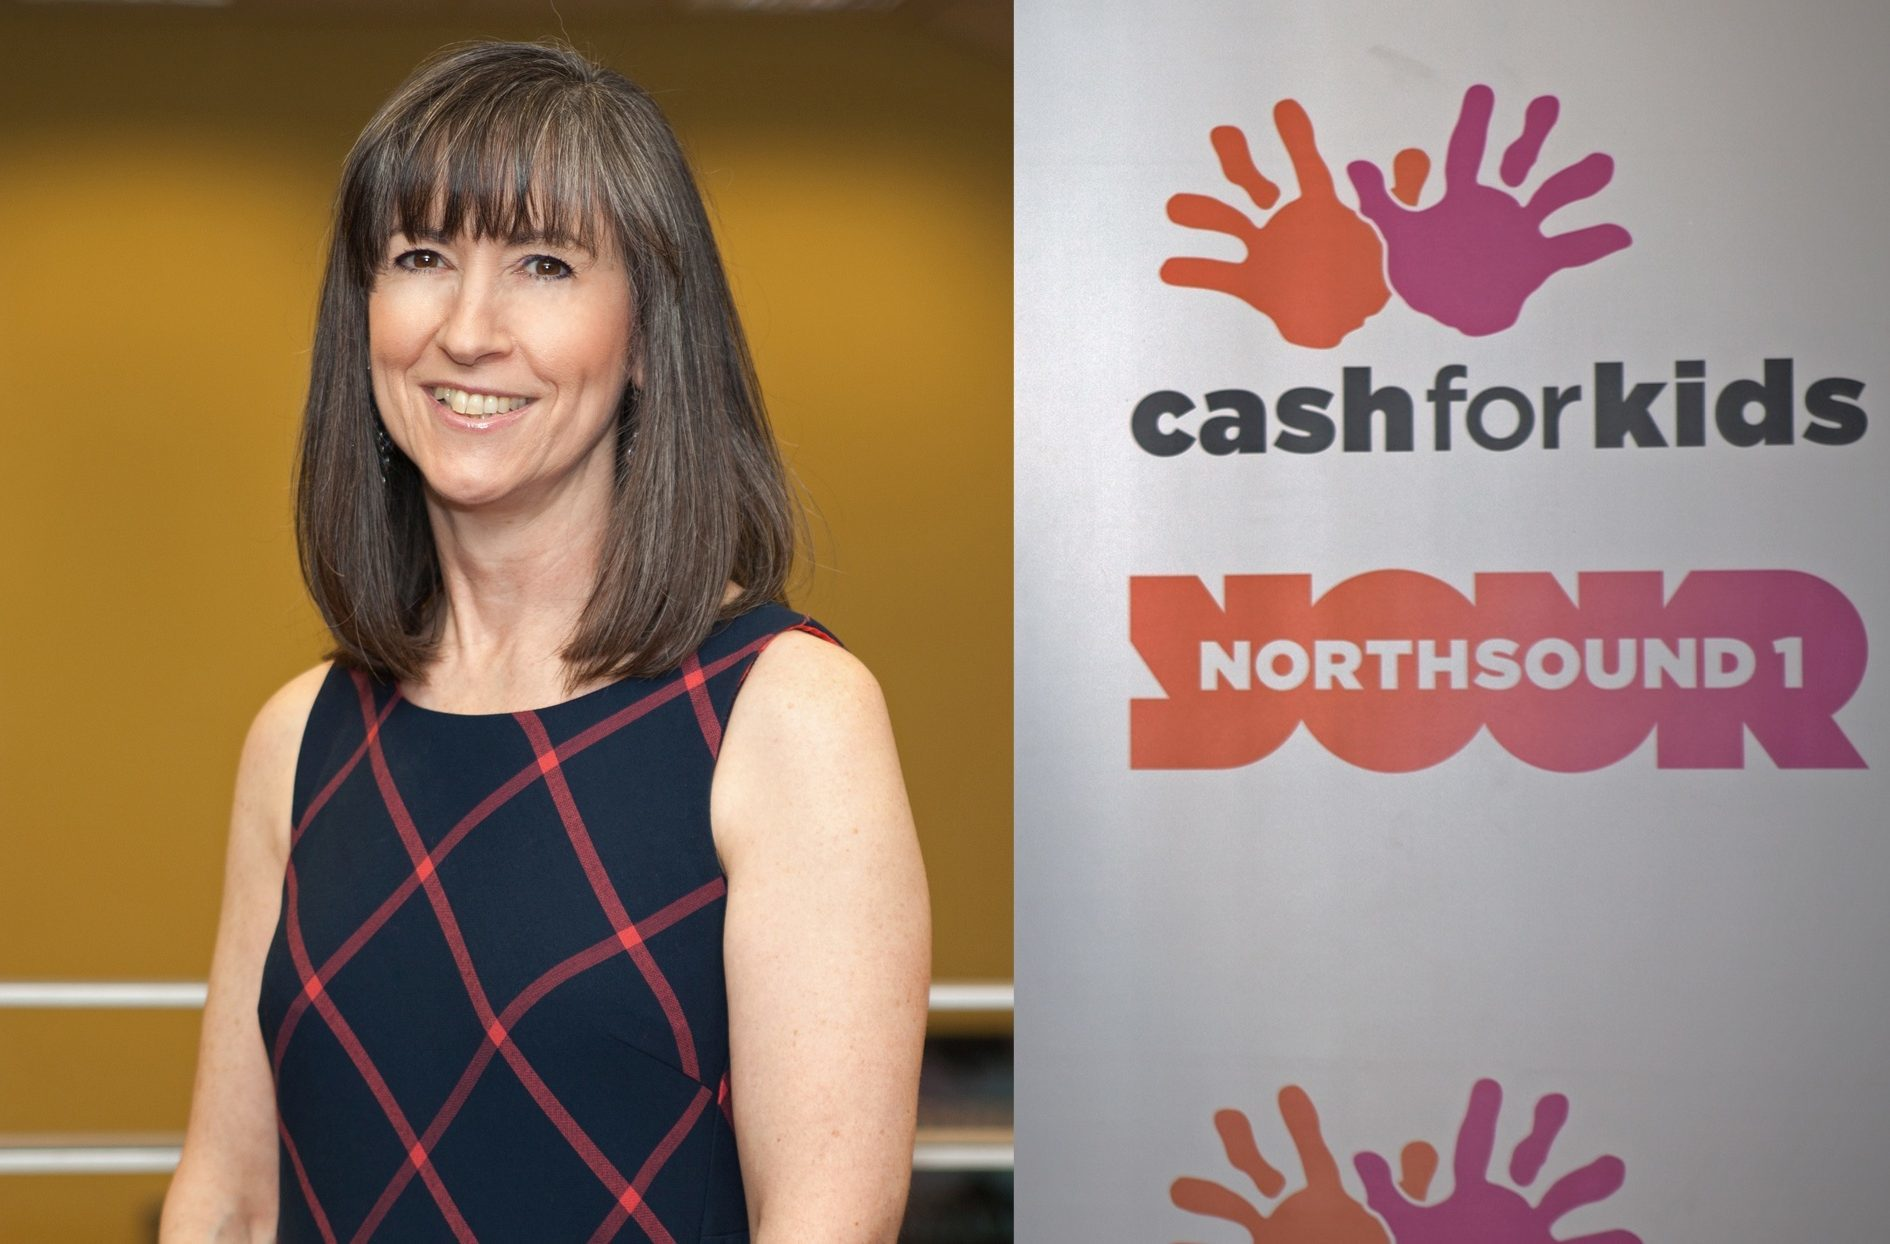 Cash for Kids charity manager Michelle Ferguson